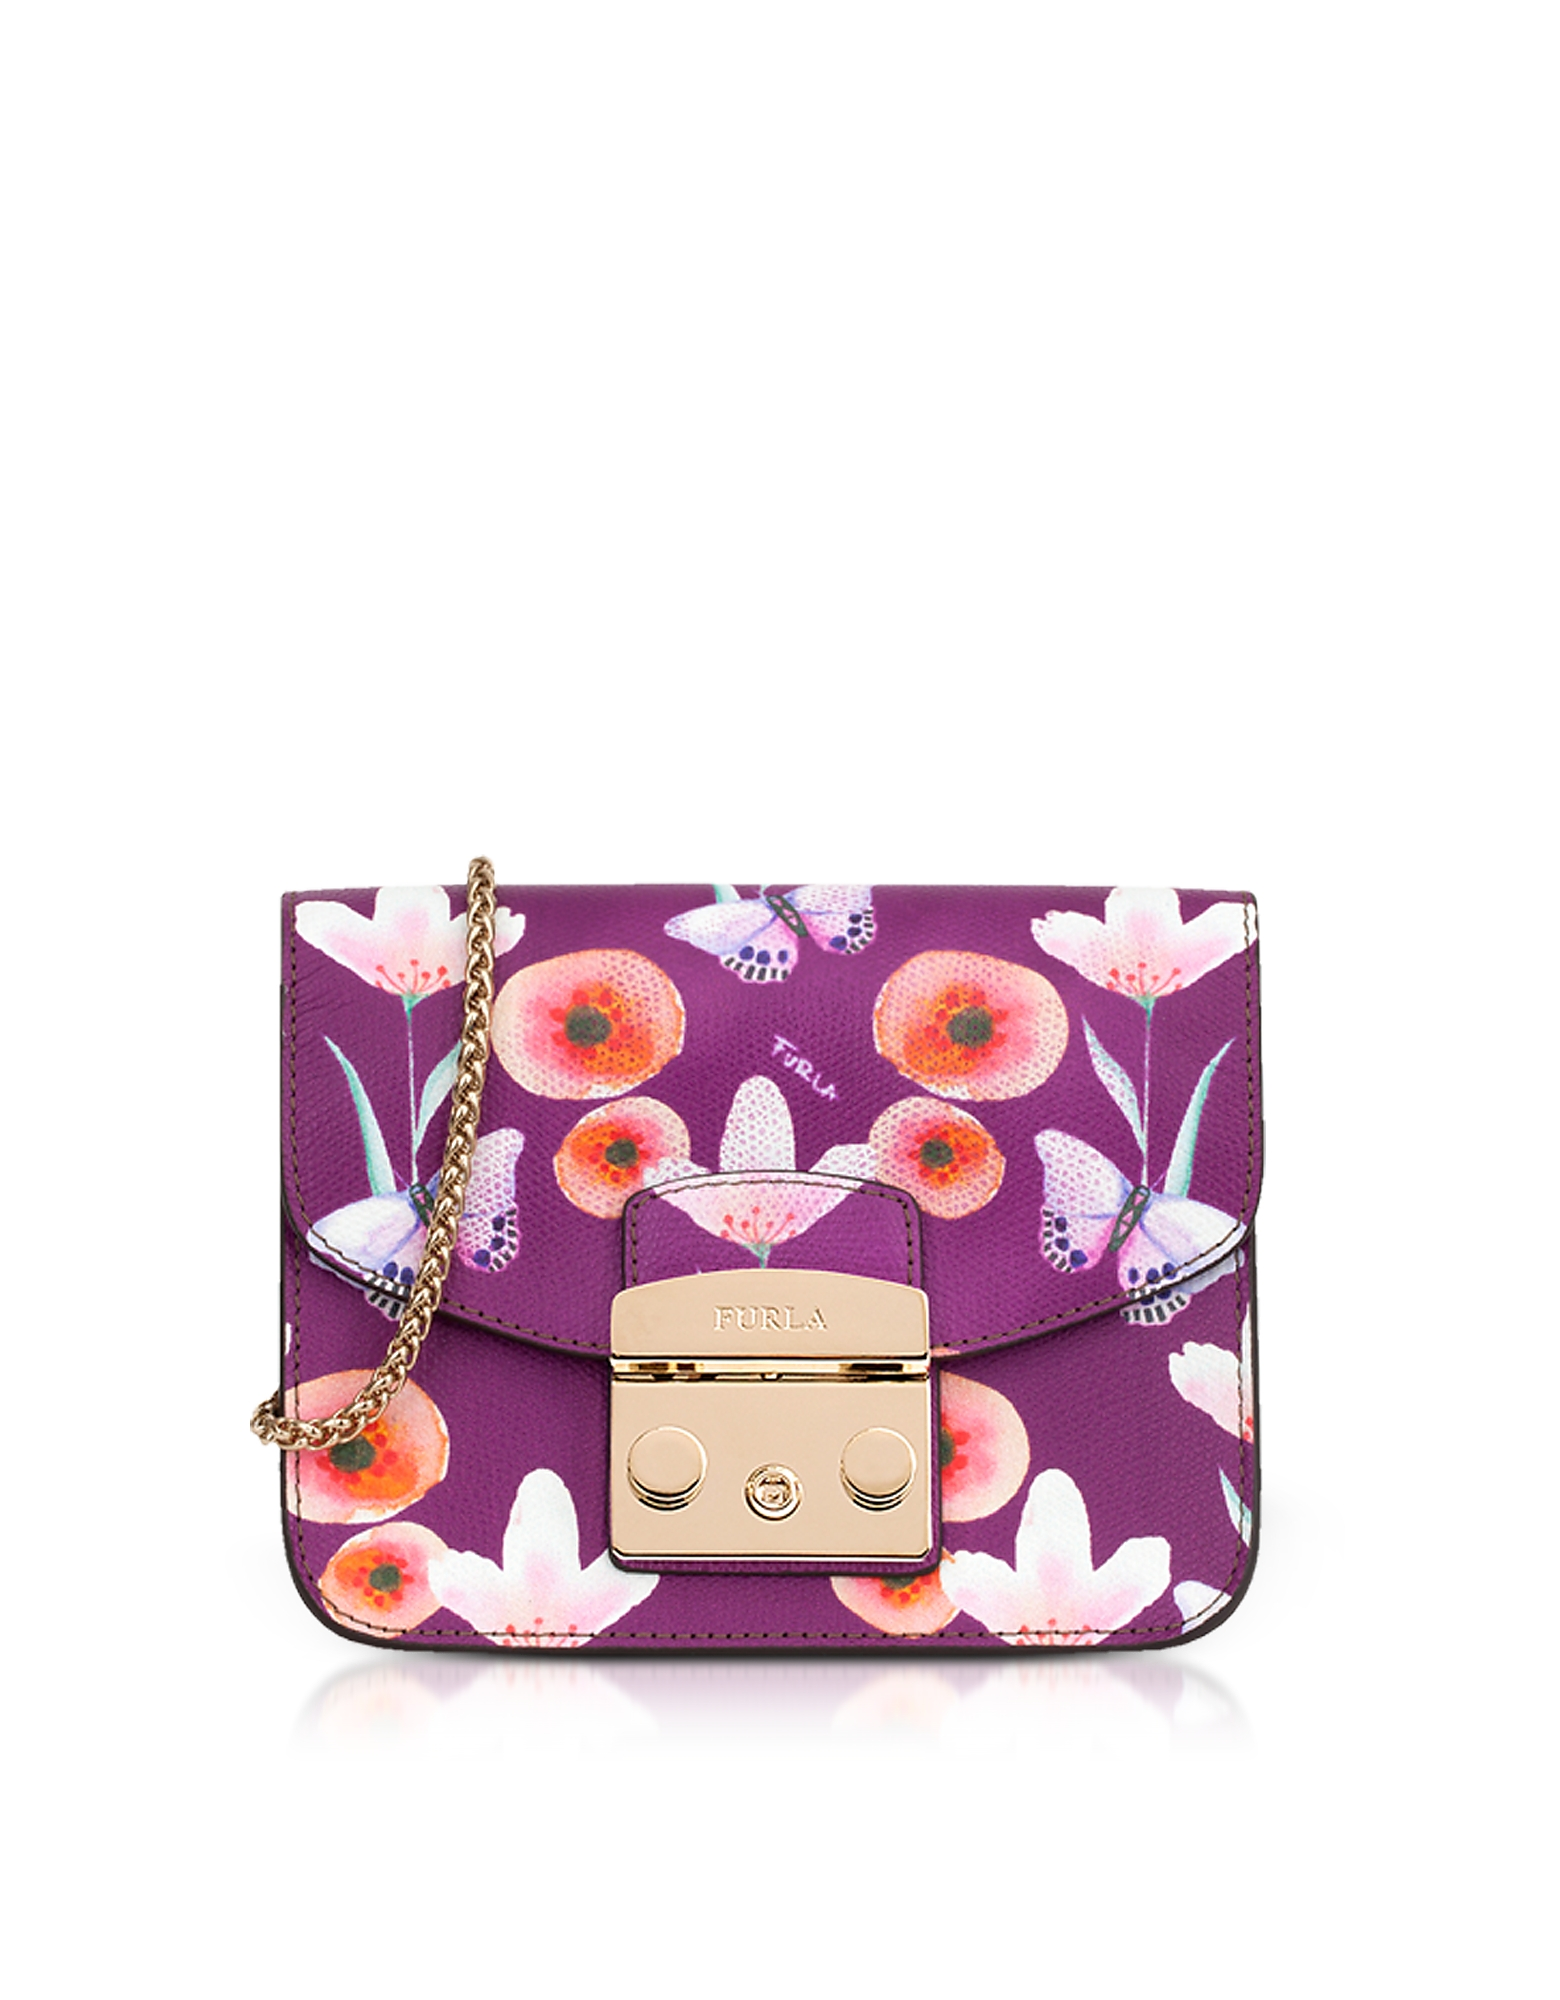 Butterfly Printed Bouganville Leather Metropolis Mini Crossbody Bag